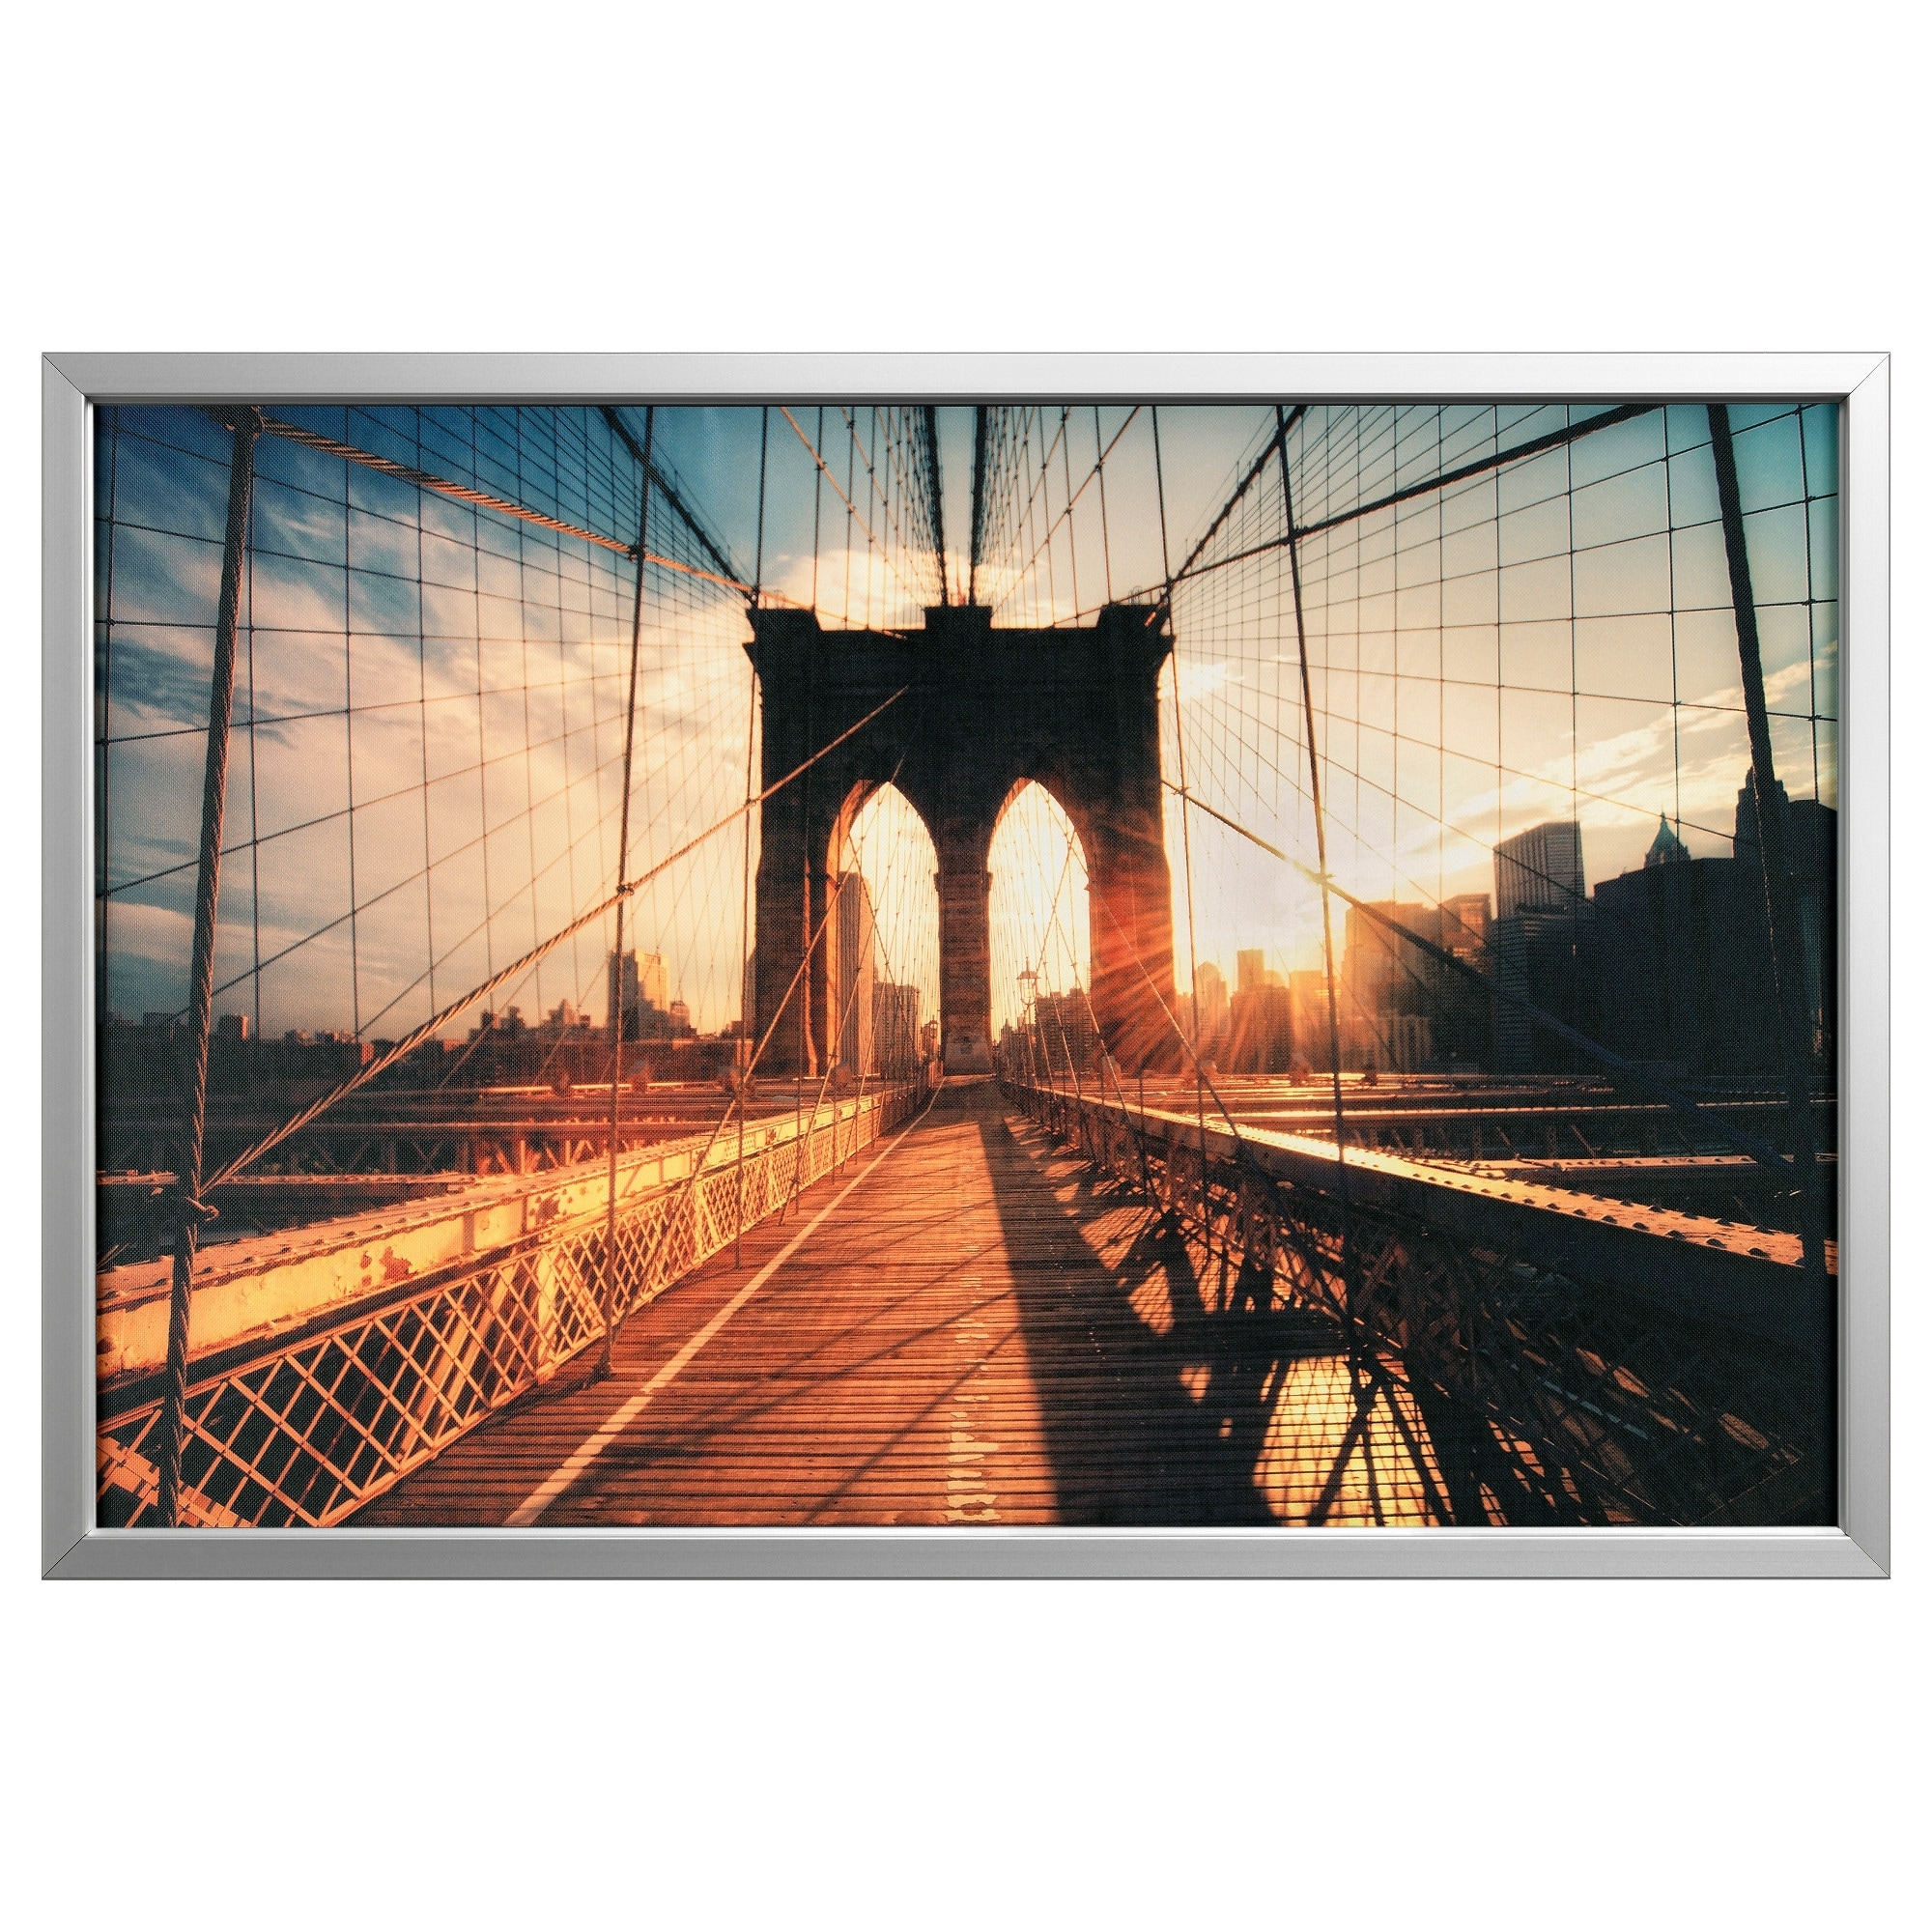 Ikea Canvas Wall Art With Well Known Canvas Prints & Art – Framed Pictures – Ikea (View 9 of 15)